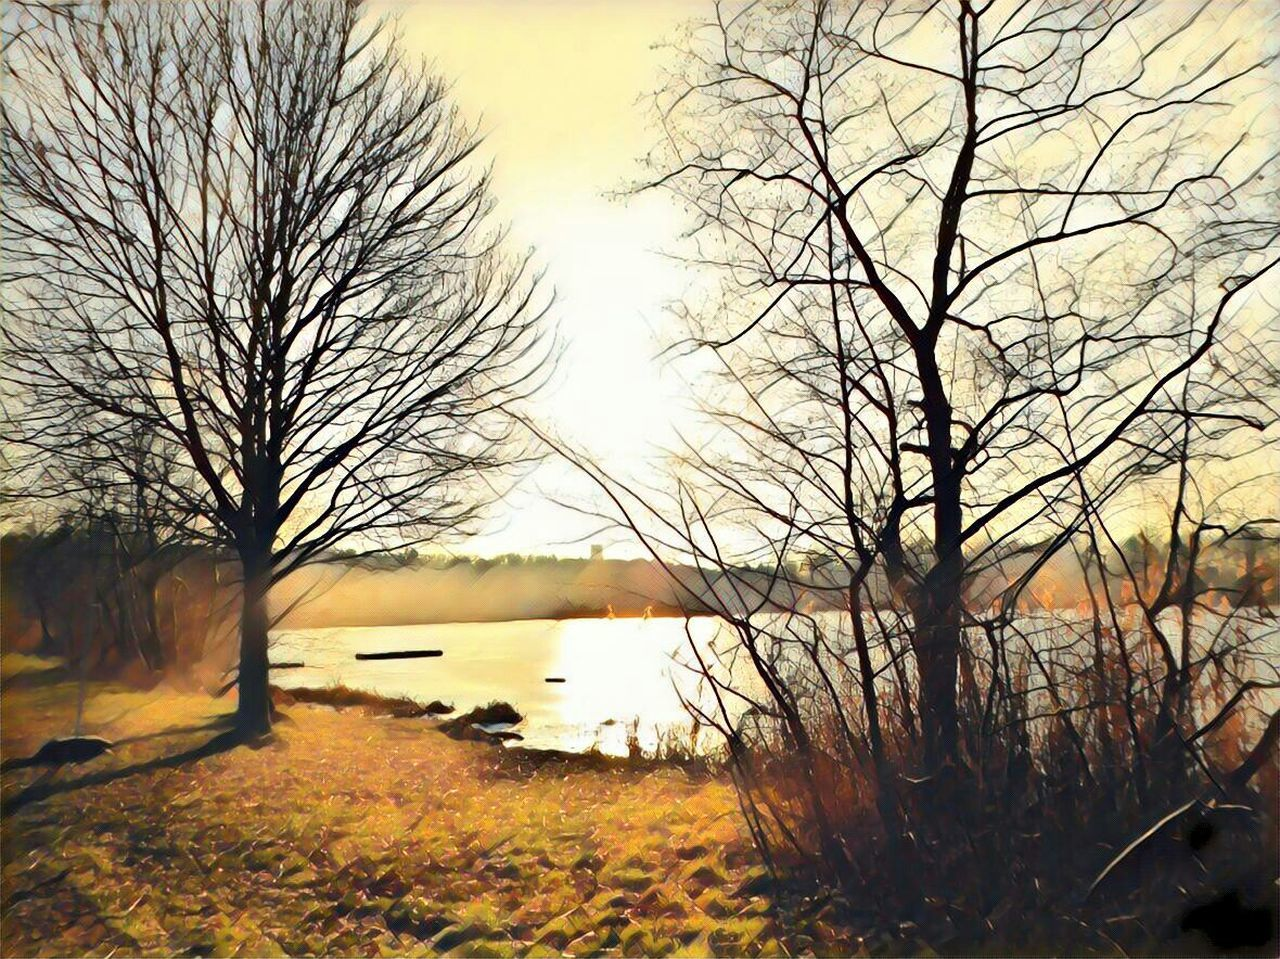 I Make My World The Way I Like It I'm A Edit-maniac😄😍 Playing With Effects Expression Artistique For My Friends 😍😘🎁 Tranquility Artistic Expression Shine Bright Like A Diamond! Landscape Sunset Beauty In Nature Tranquil Scene Tranquility Nature Bare Tree Lakesideview Brrrrrrrrr❄❄❄❄ Favorite Places Sunny Winter Day Nature Always Impressive..... Fragility Of Life Love The View..but Not The Temperature Surrounded By Nature Express Yourself ❤ Cold Outside,time For Creativity😎 Do What You Love Love What You Do